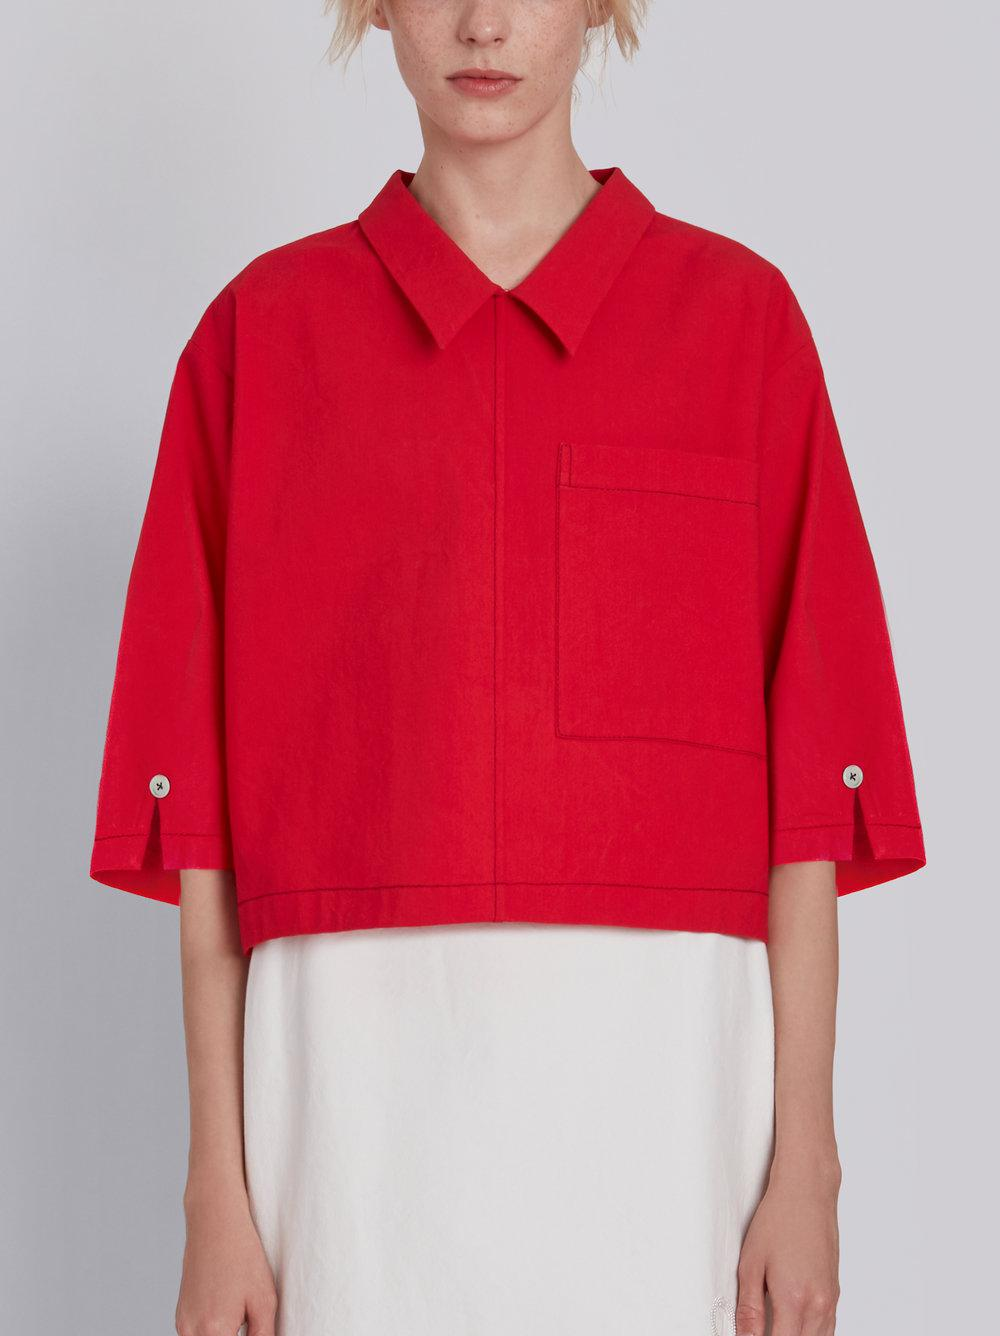 Very Cheap For Sale Red Button Back Blouse Thom Browne Prices For Sale Cheap Fashion Style Buy Cheap 100% Original CWWpotR